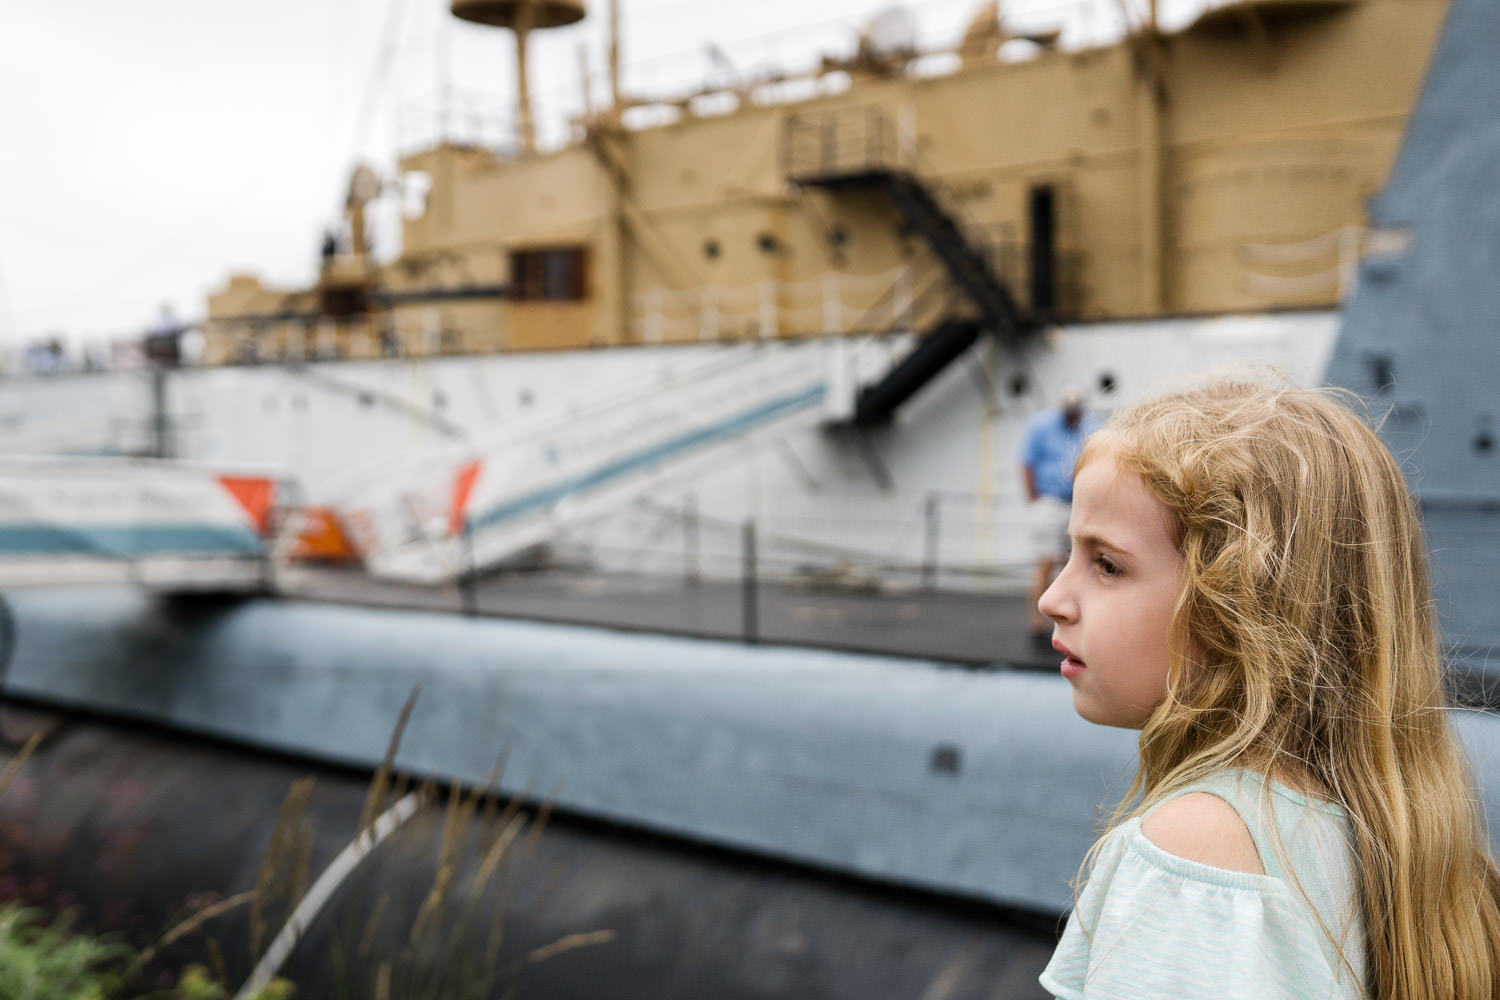 A little girl looks out from a pier at a large boat.